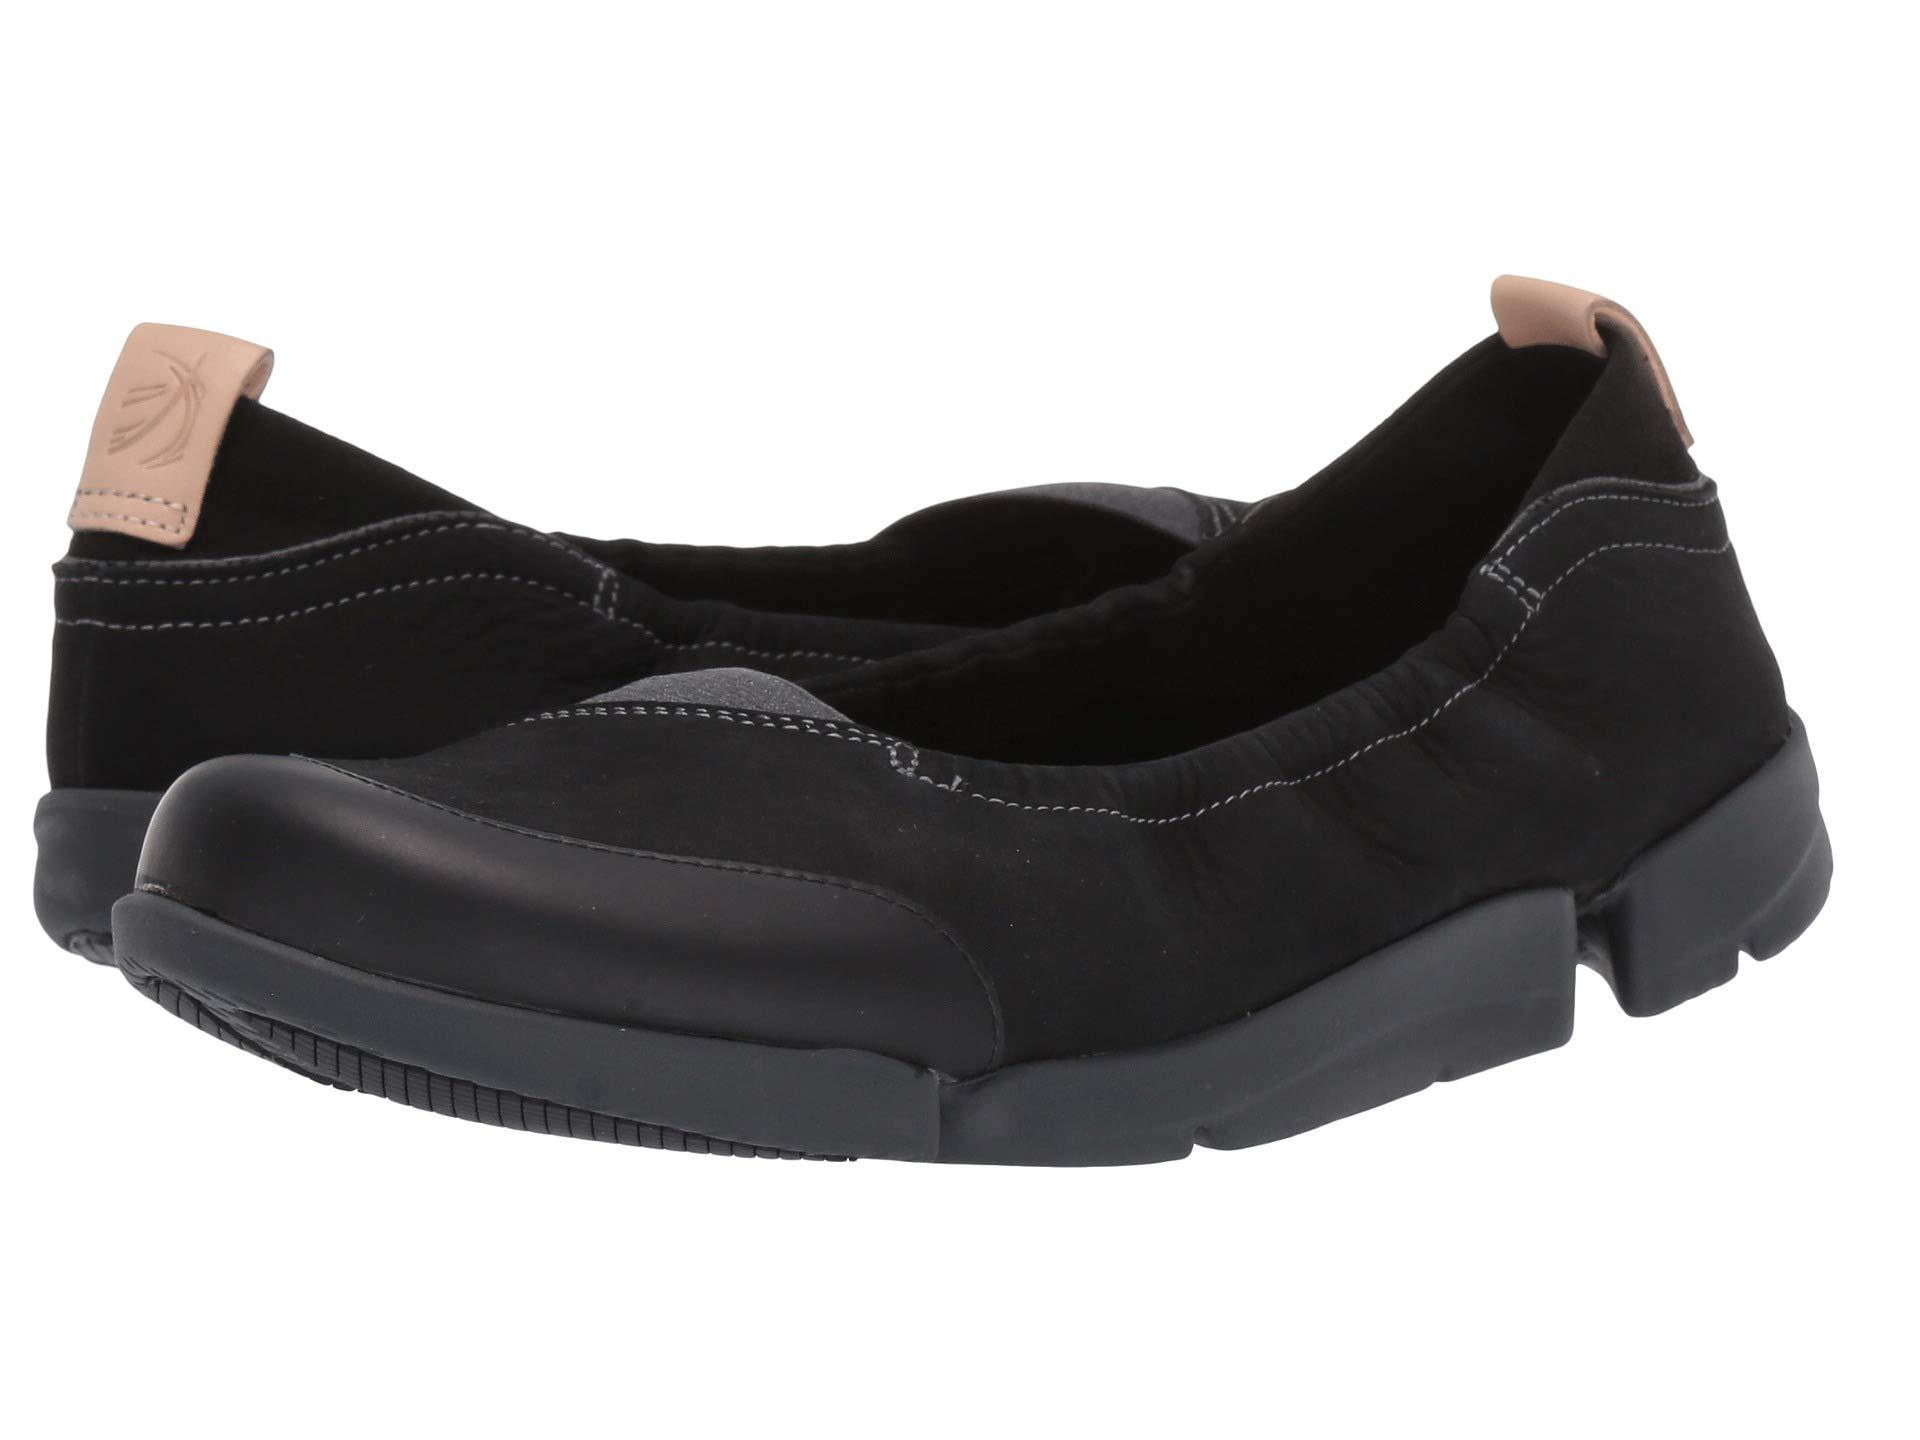 3a4c0ec063 Clarks Tri Adapt (white Leather) Women's Flat Shoes in Black - Lyst